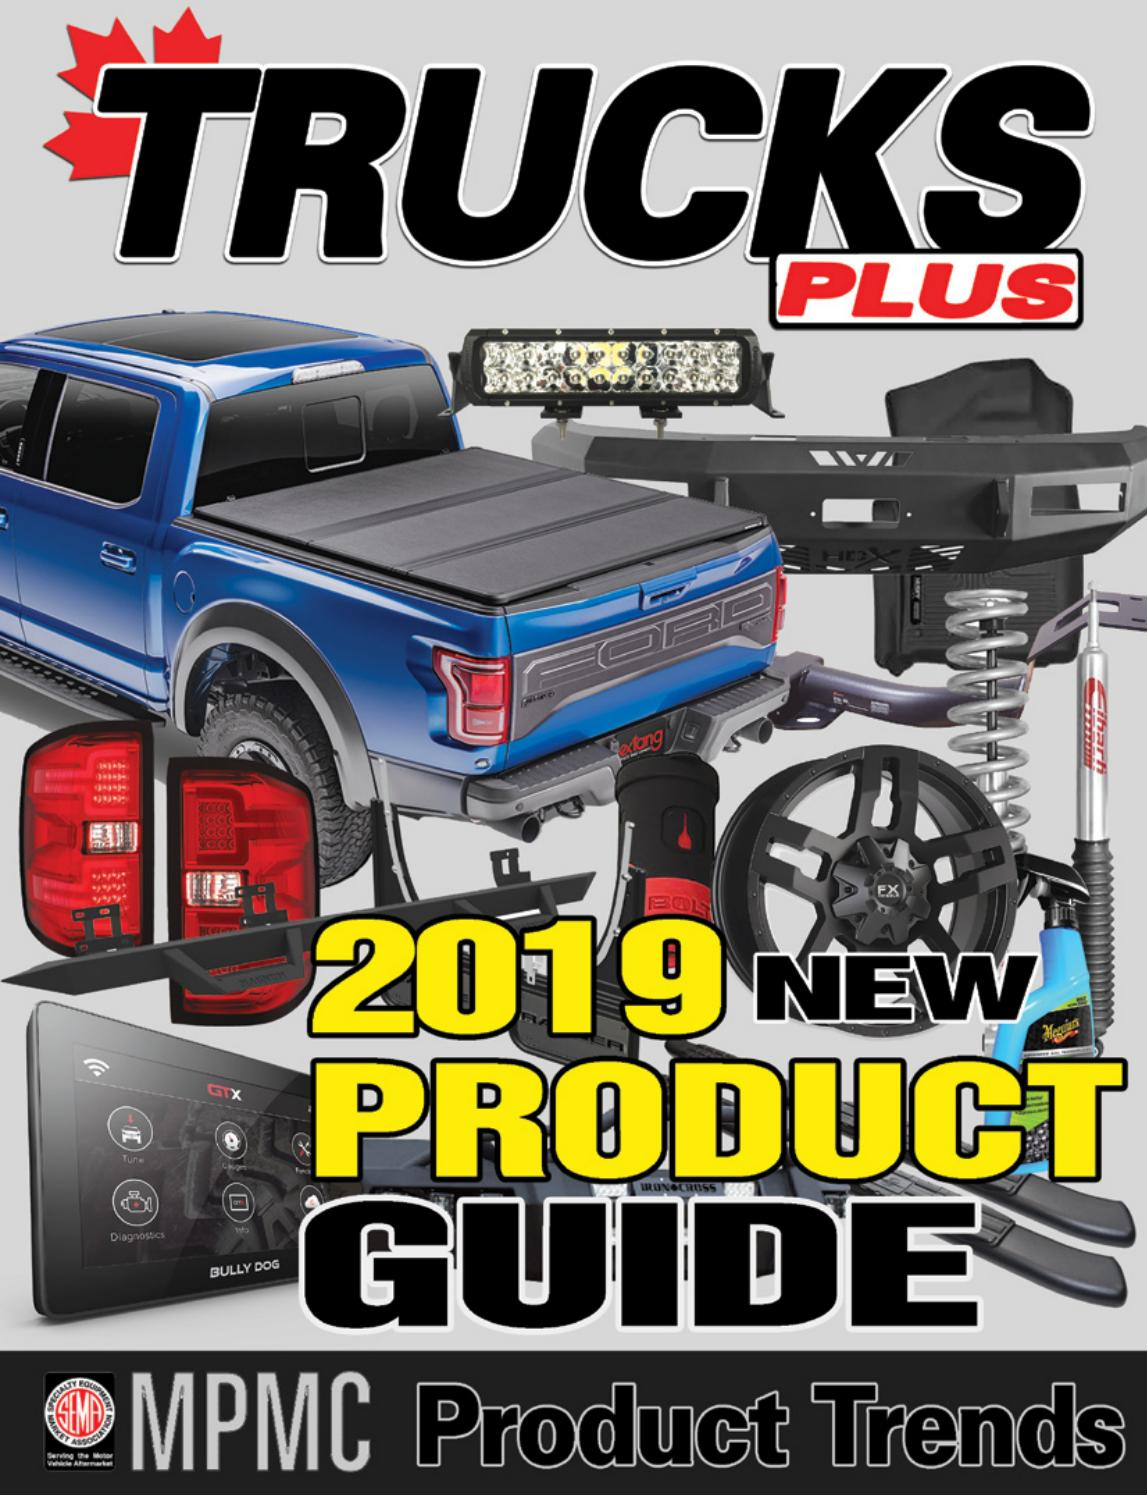 Trucks Plus New Product Guide 2019 By Rpm Canada Issuu